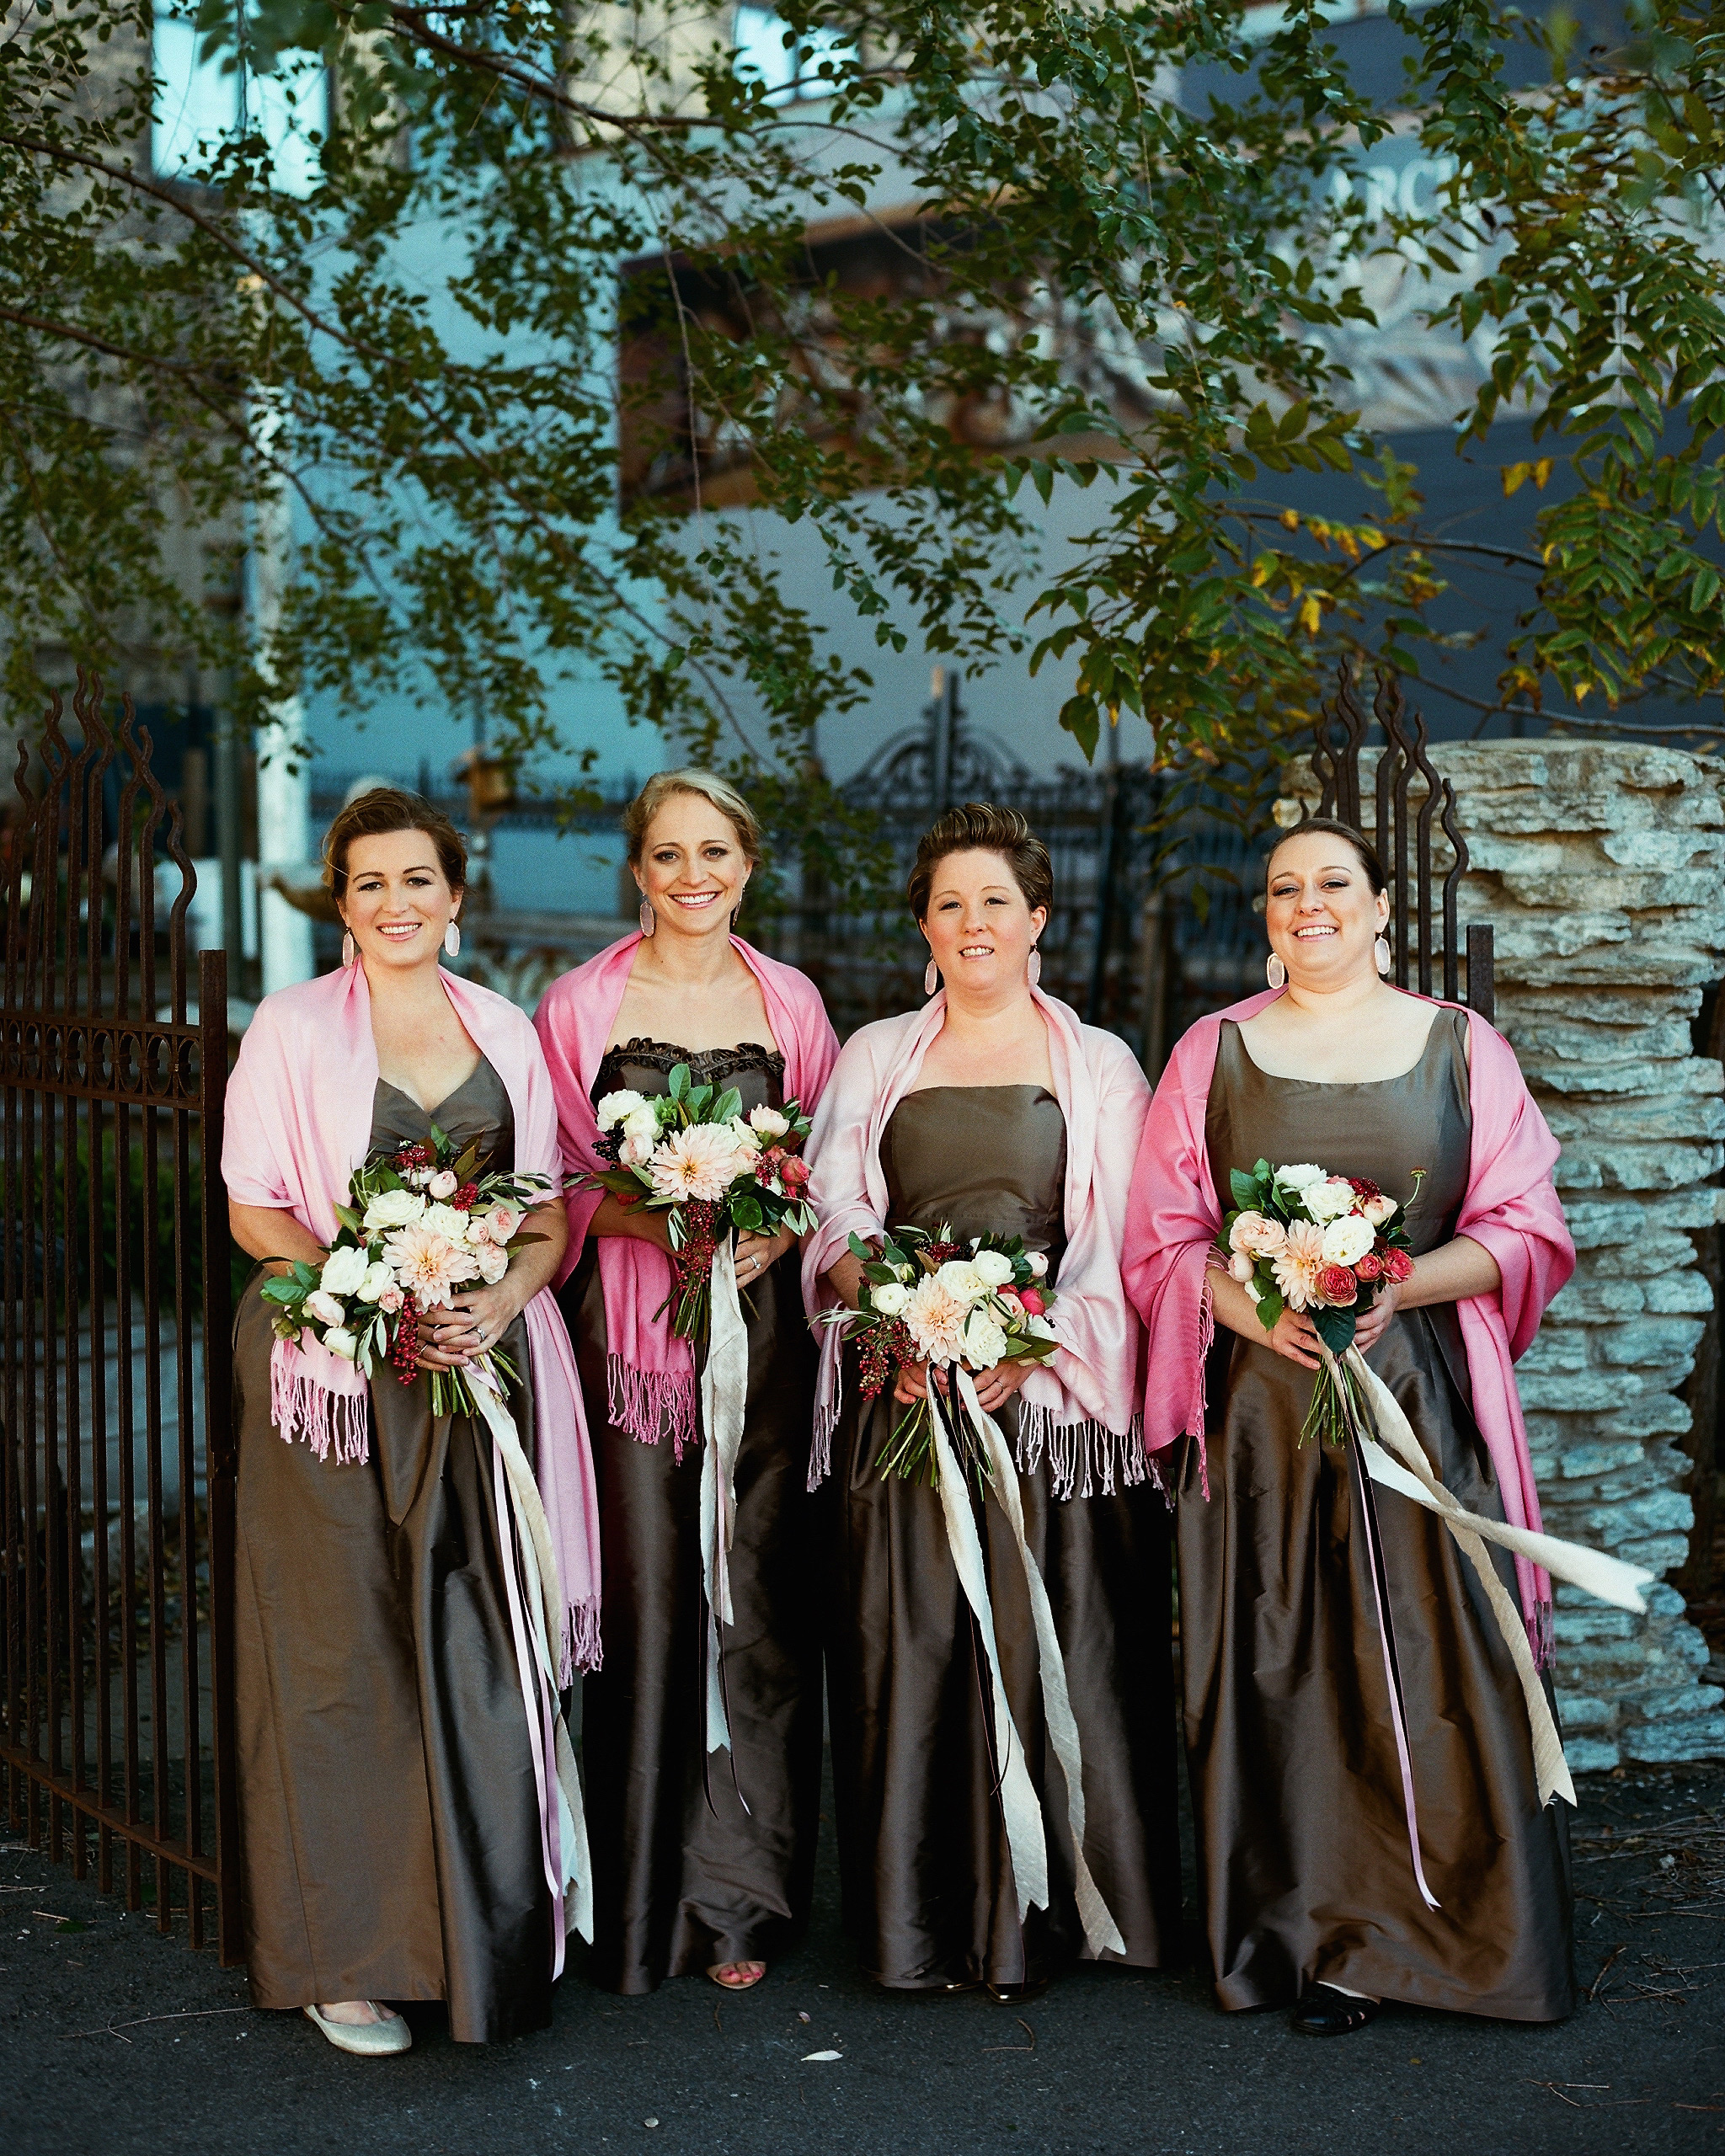 maddy-mike-wedding-bridesmaids-257.9727.03.2015.49-6134174-0716.jpg